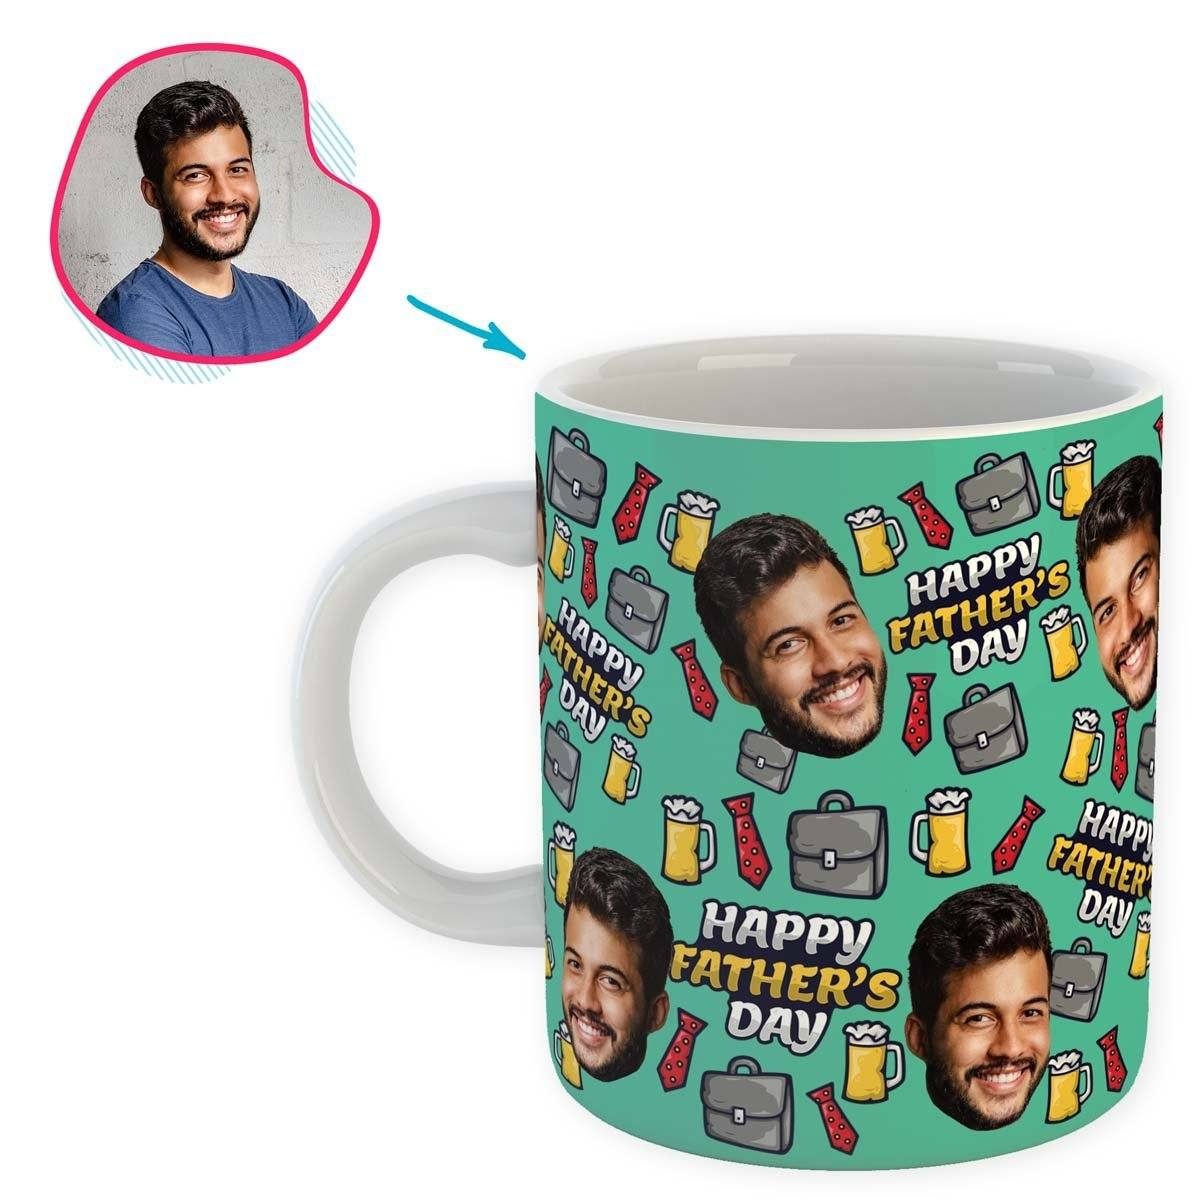 Mint Fathers Day personalized mug with photo of face printed on it